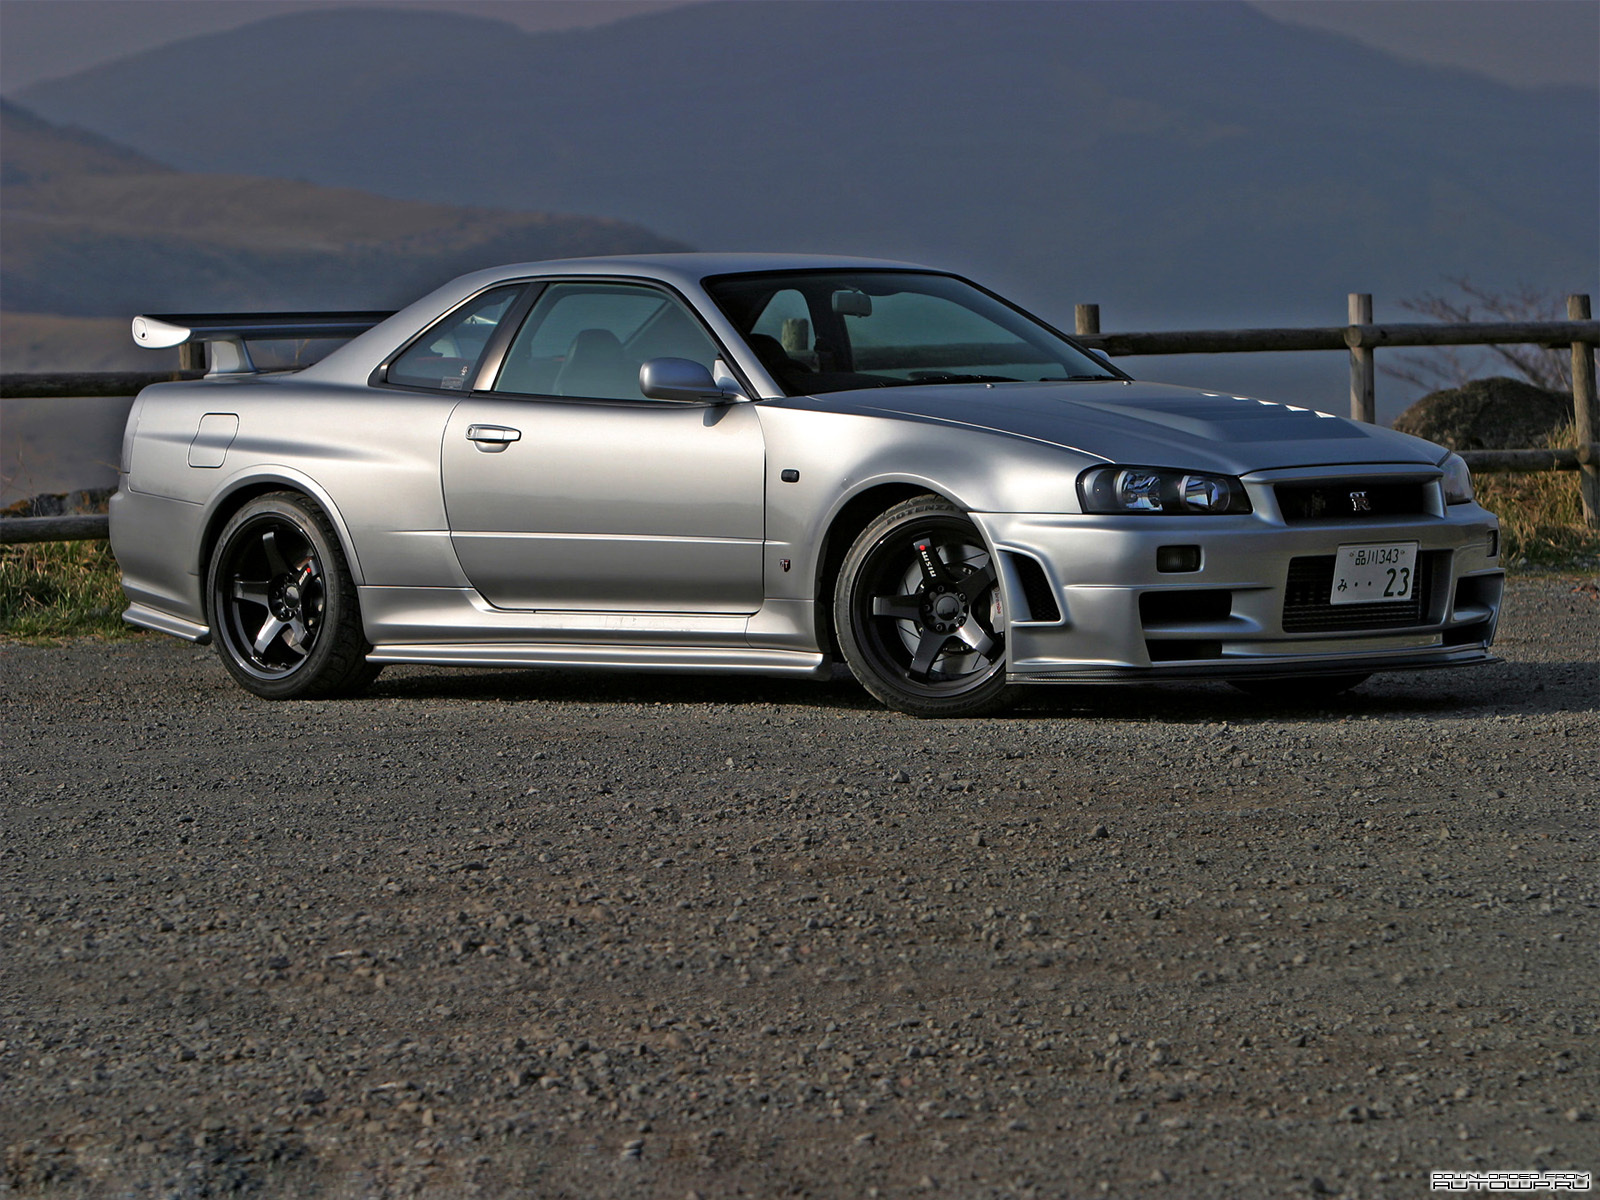 1999 2002 nissan skyline gtr type r34 dark cars wallpapers. Black Bedroom Furniture Sets. Home Design Ideas